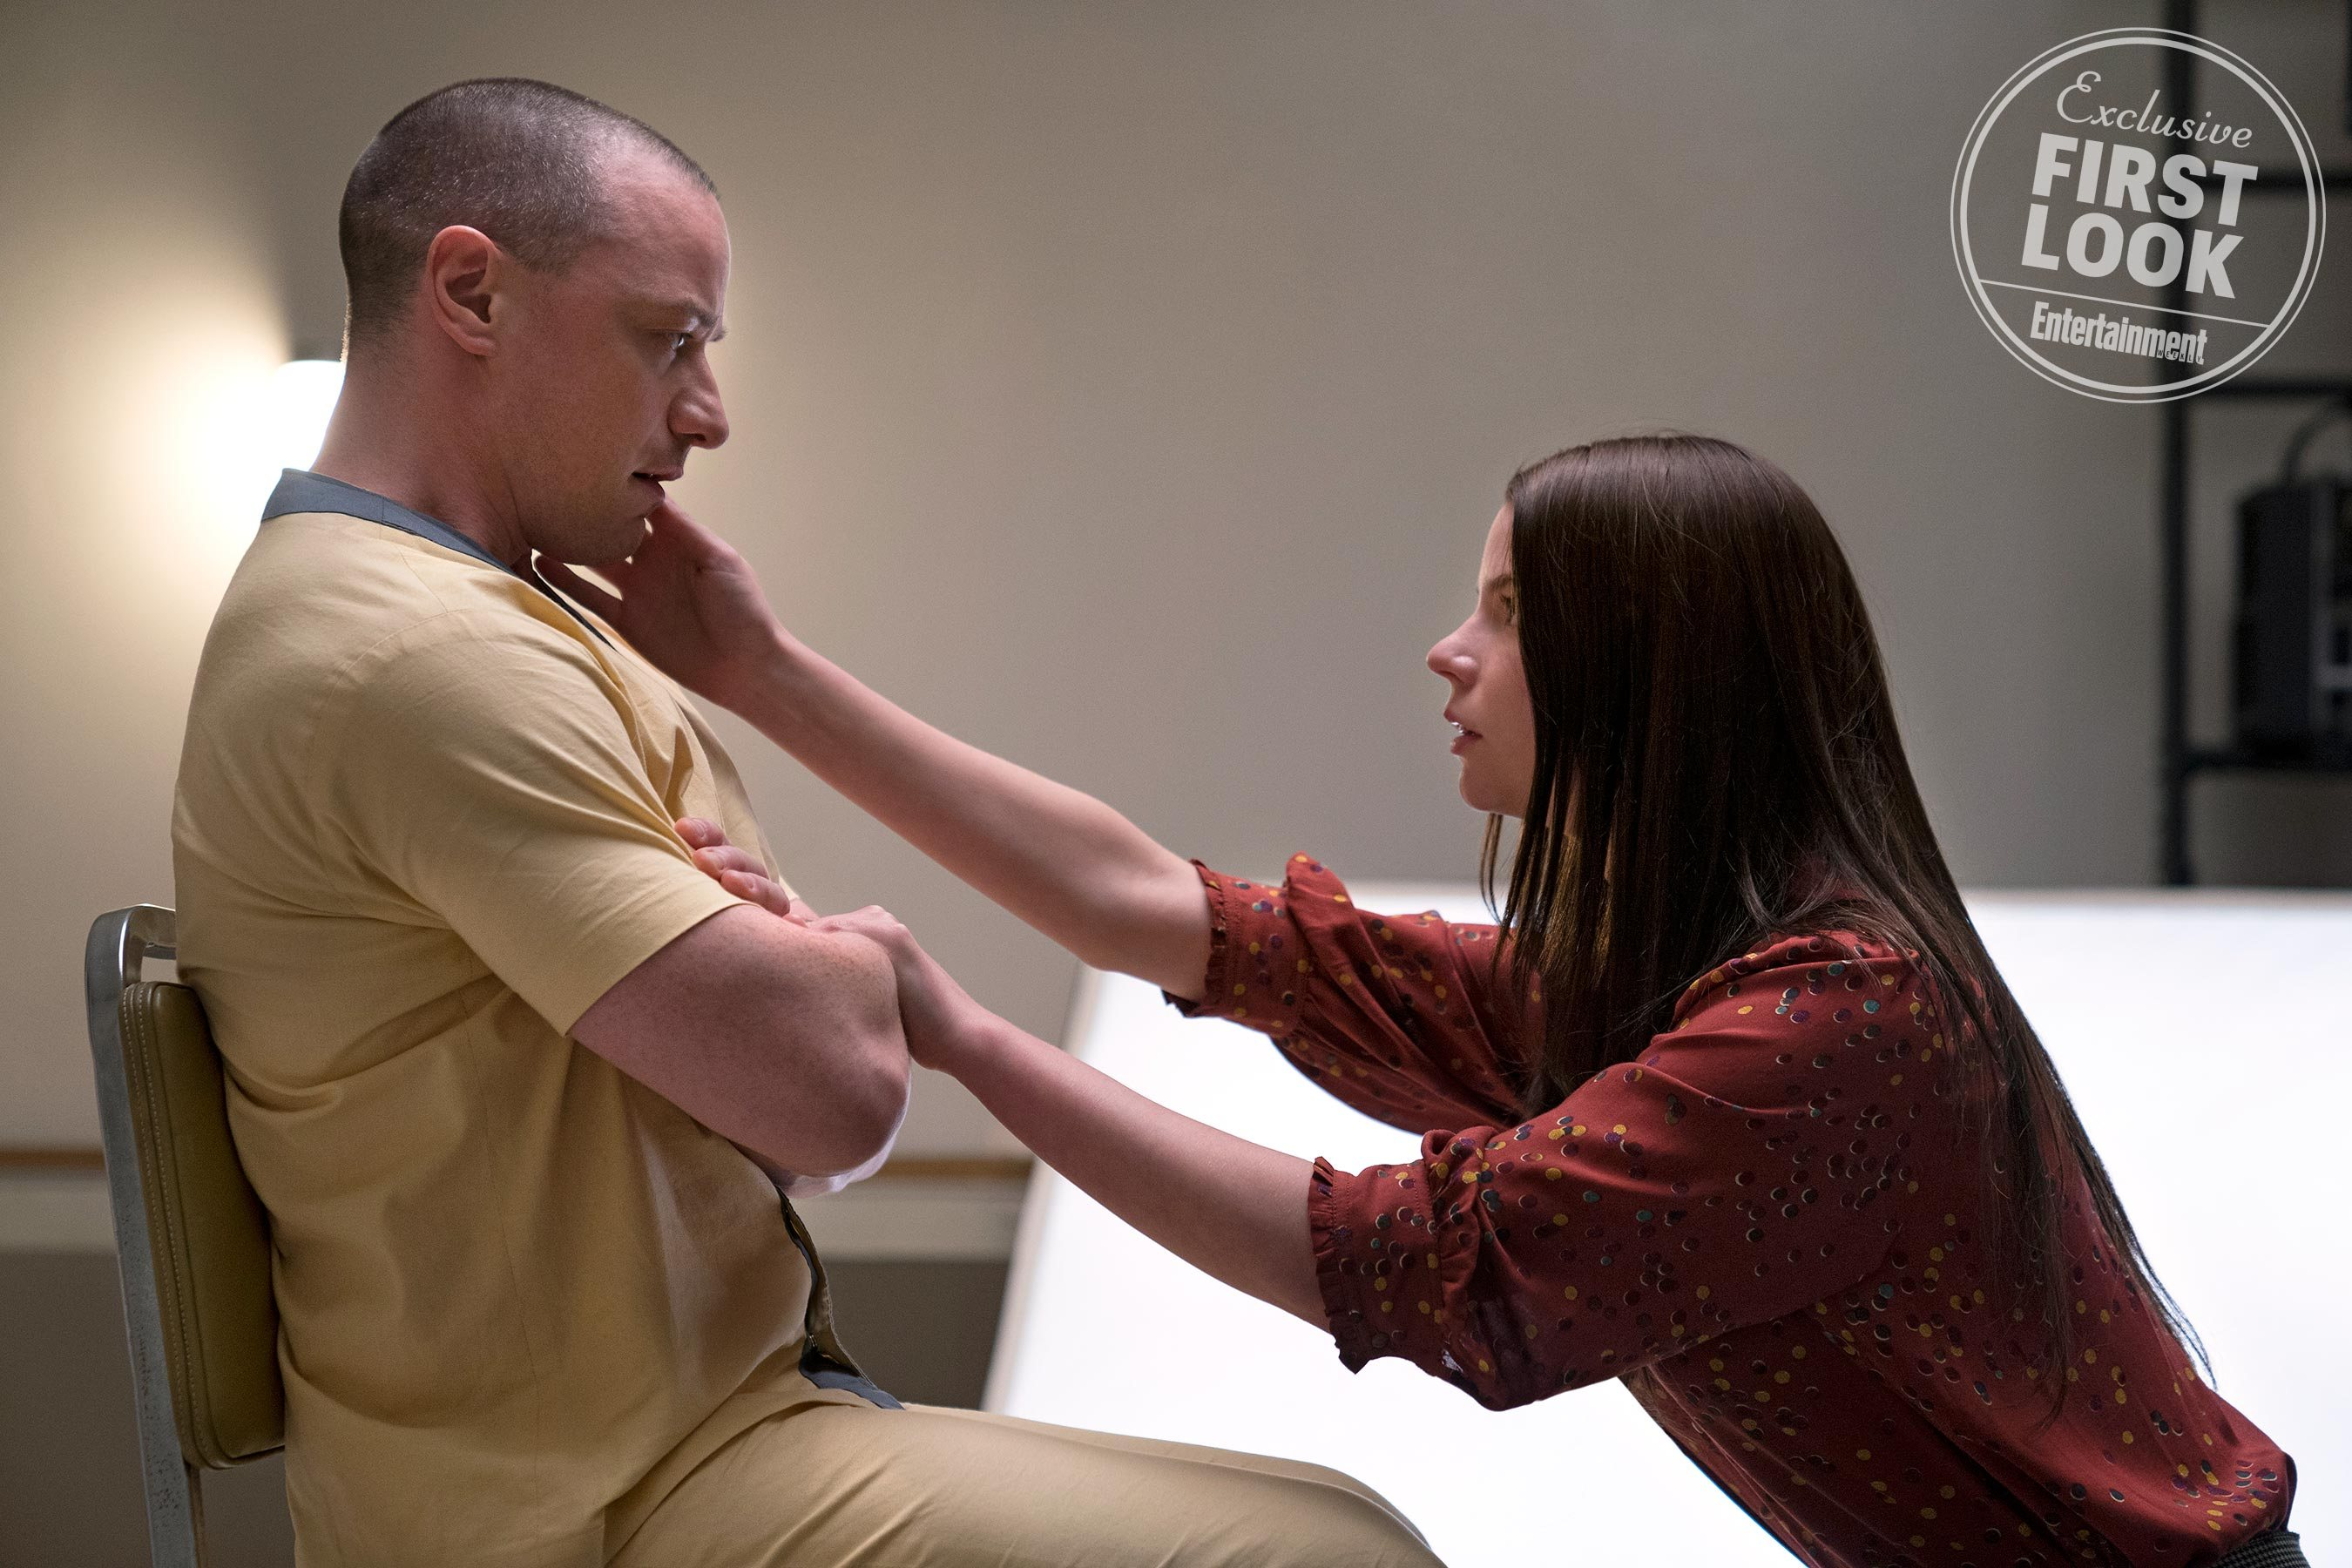 Glass Pic 2 - New GLASS Pics Featuring Willis, Jackson, Joy, and McAvoy